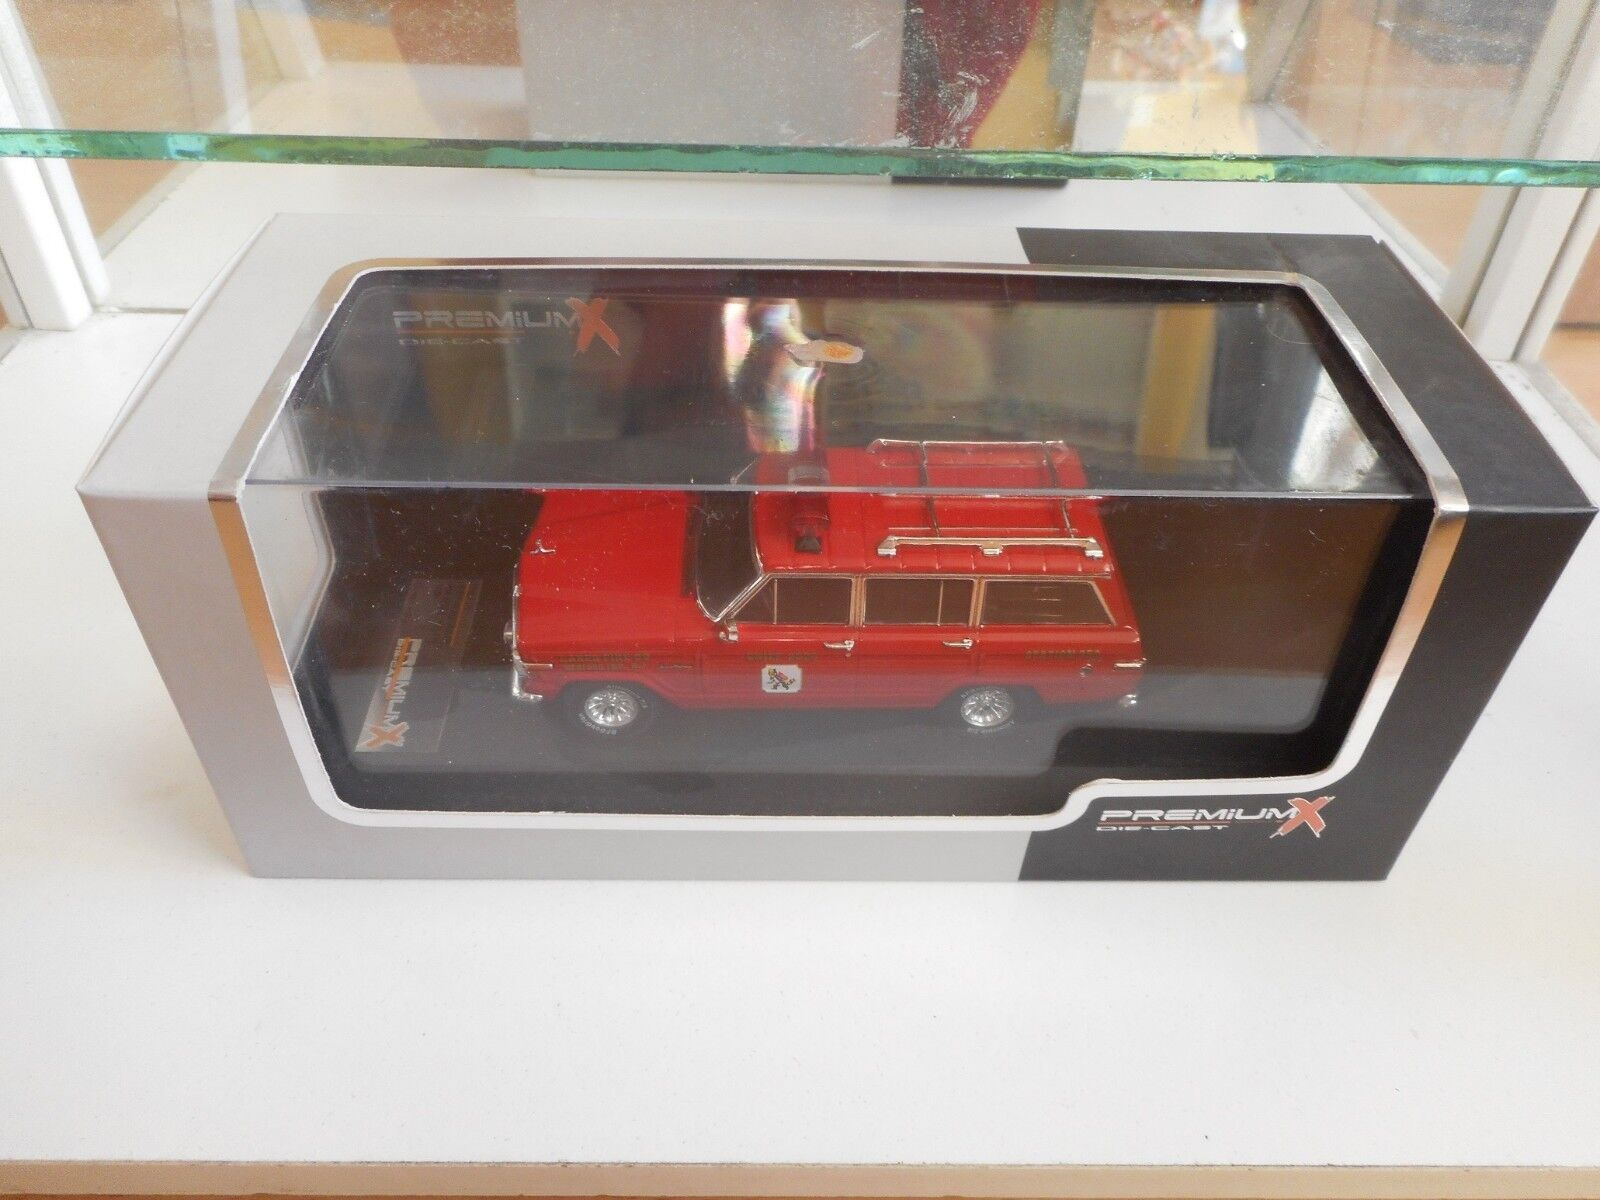 Premium X Jeep Wagoneer New Jersey Lakes Fire 1989 in rosso on 1 43 in Box